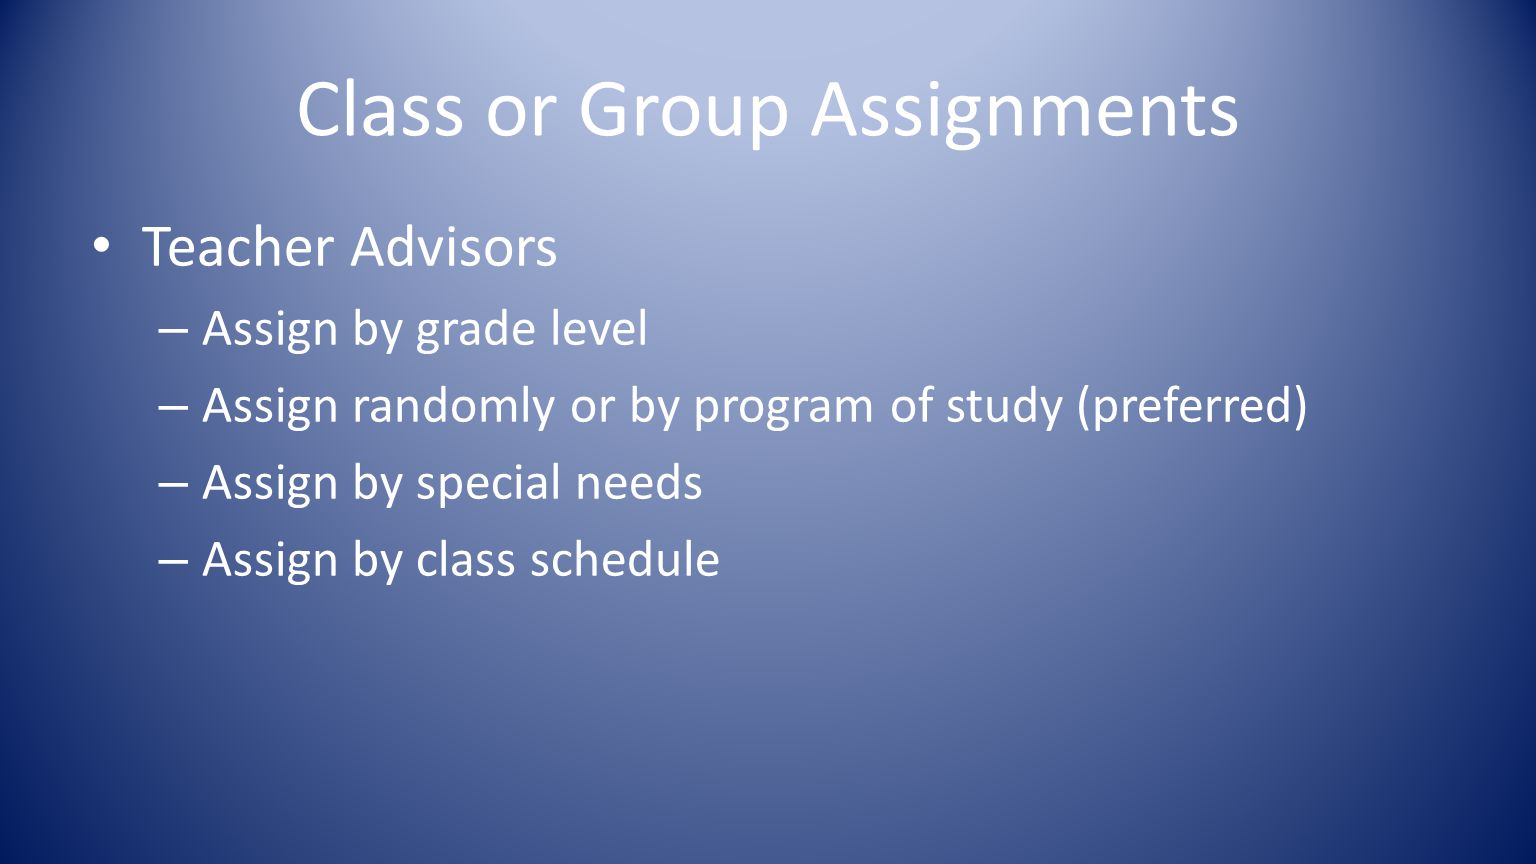 Class or Group Assignments Teacher Advisors – Assign by grade level – Assign randomly or by program of study (preferred) – Assign by special needs – Assign by class schedule